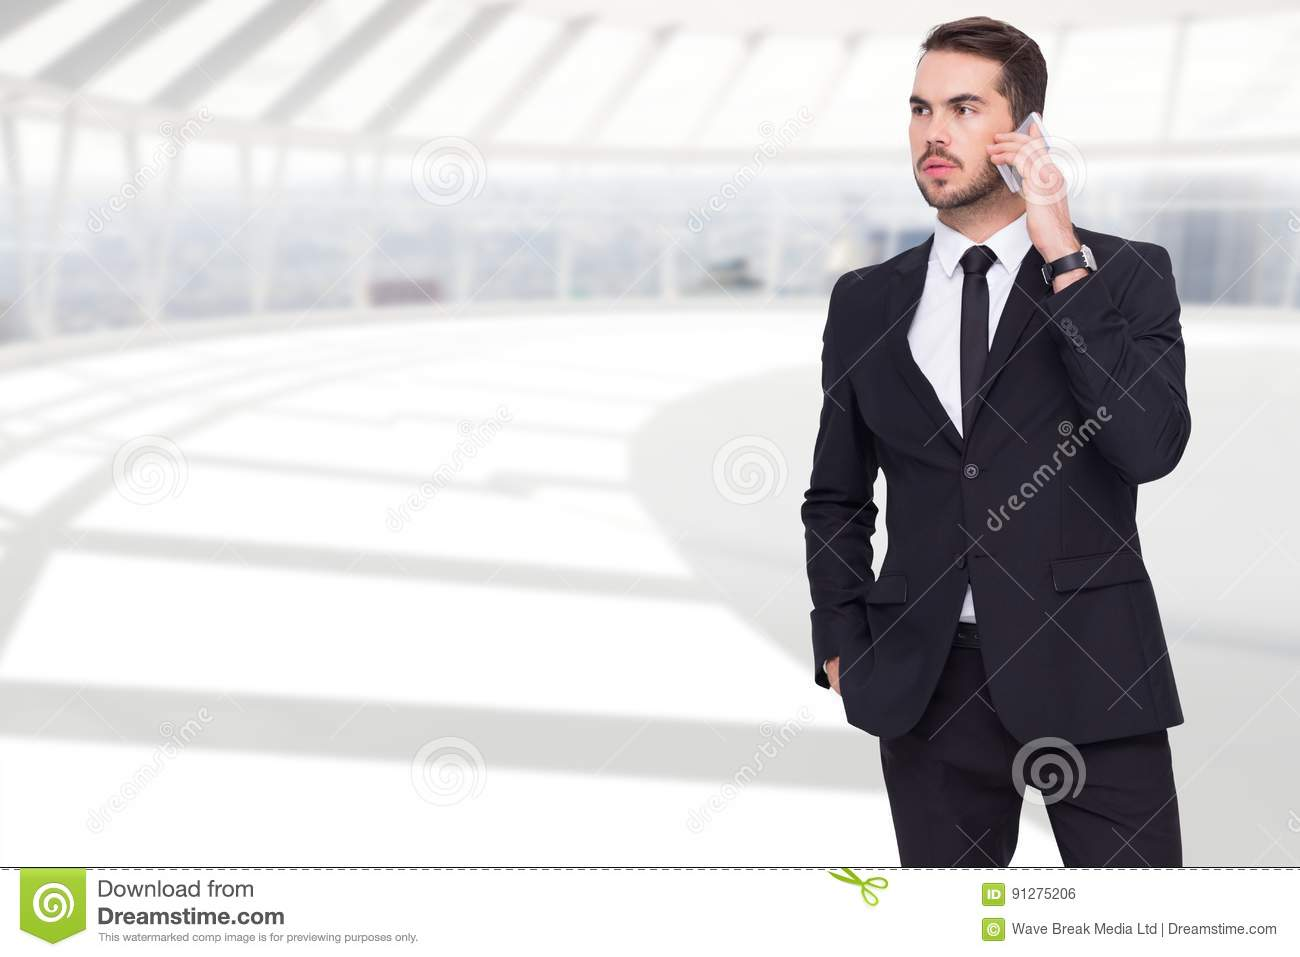 Homme d affaires Using Mobile Phone dans le bureau